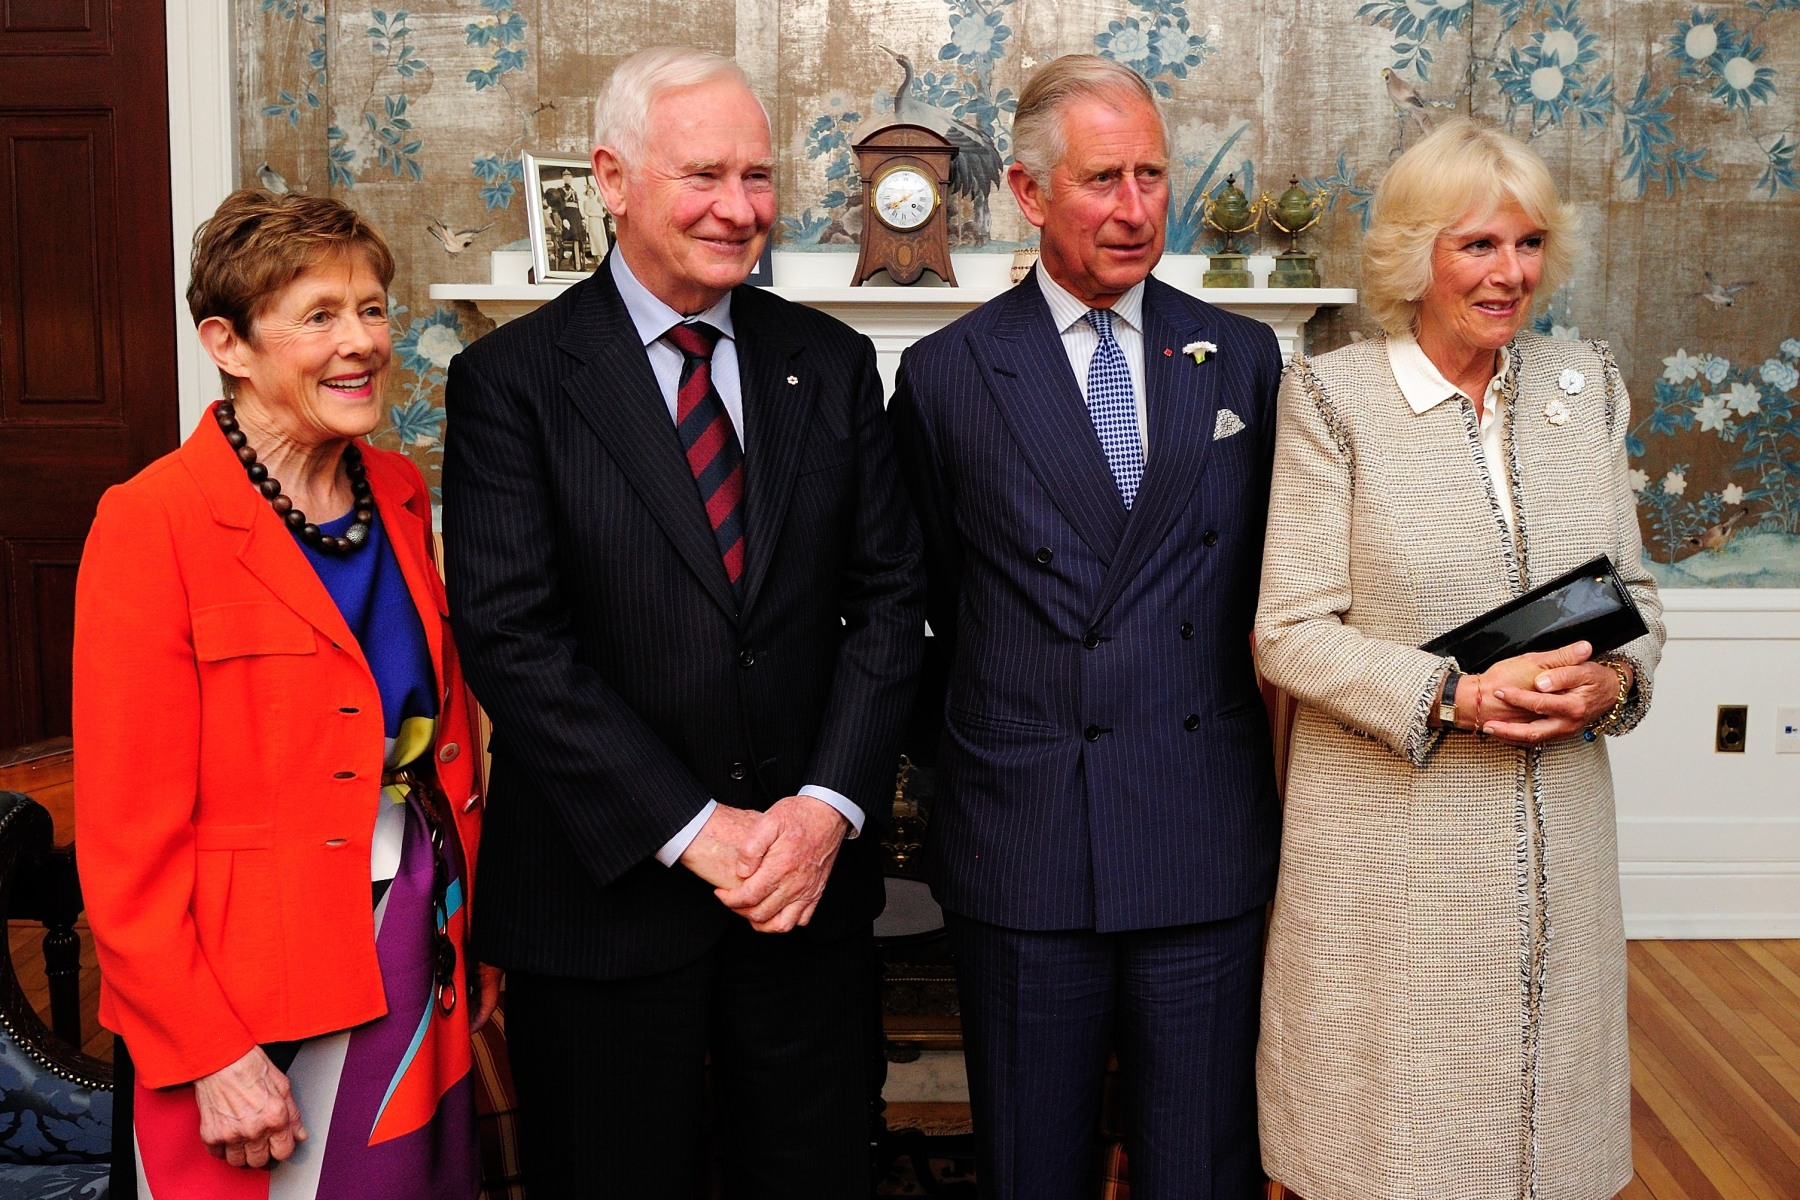 Their Excellencies and Their Royal Highnesses The Prince of Wales and The Duchess of Cornwall paused for a group photo.